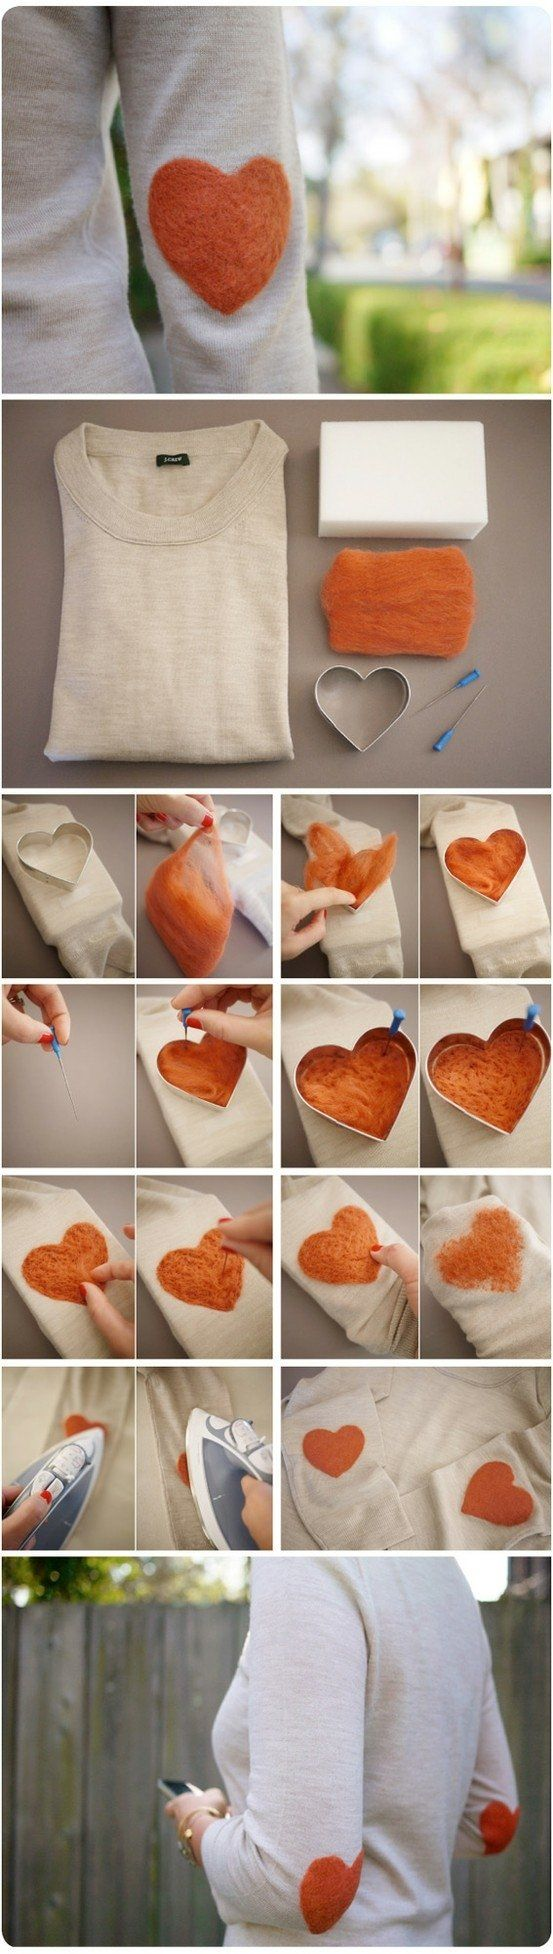 "Check out Jenna Whittaker's ""DIY heart elbowpad detailing"" decalz @Lockerz http://lockerz.com/d/20087819?ref=kelly.tom2771"